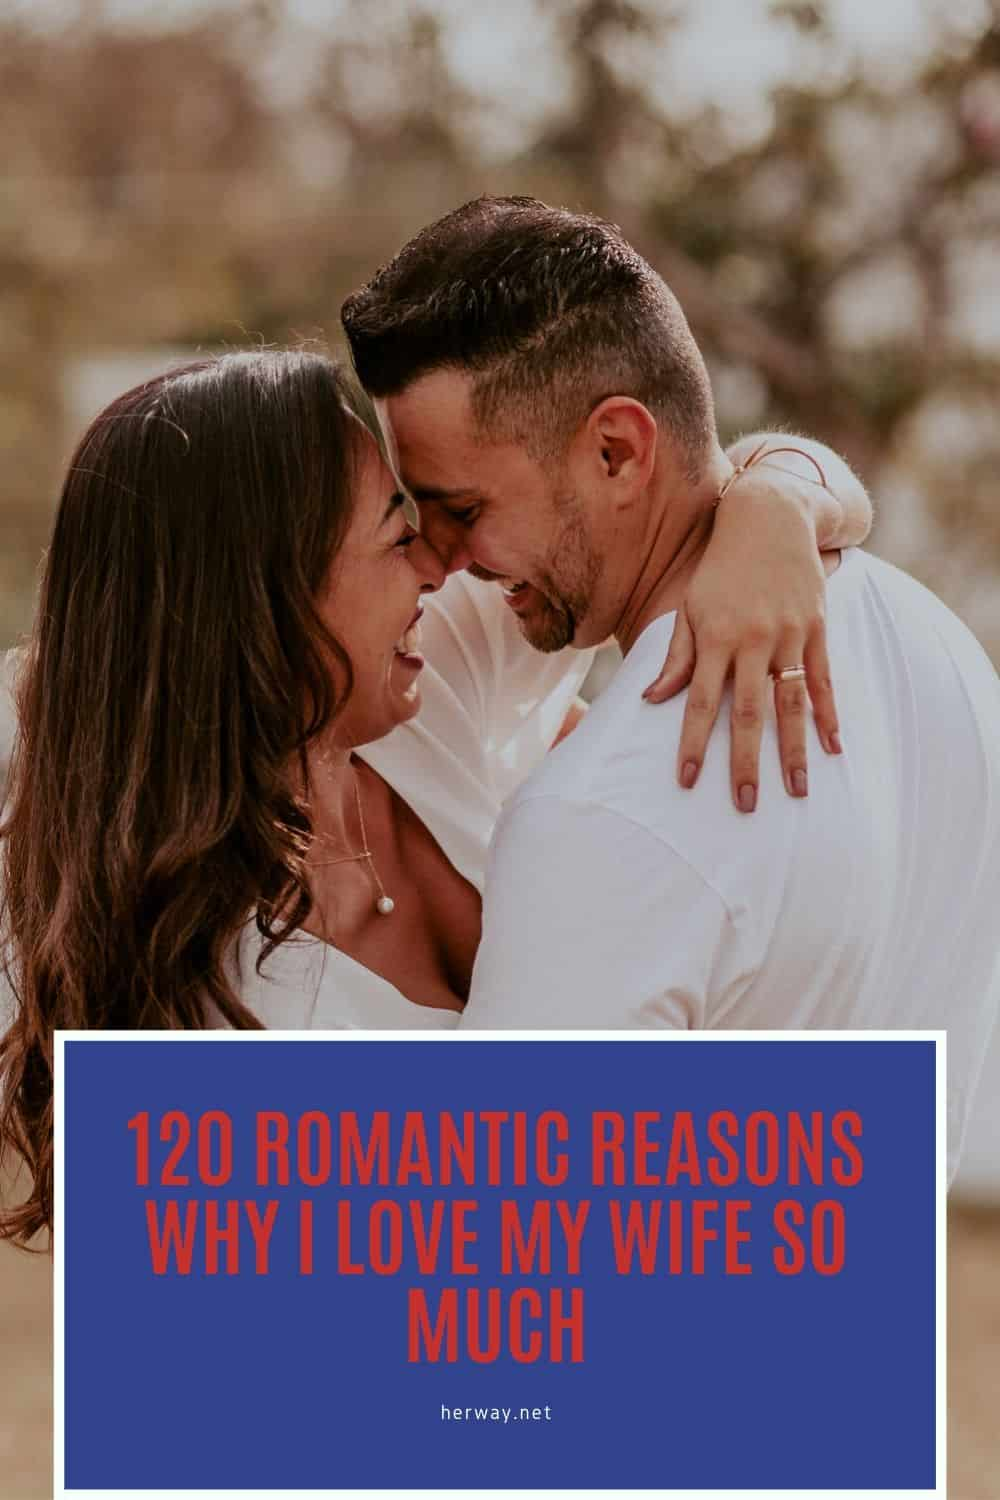 120 Romantic Reasons Why I Love My Wife So Much